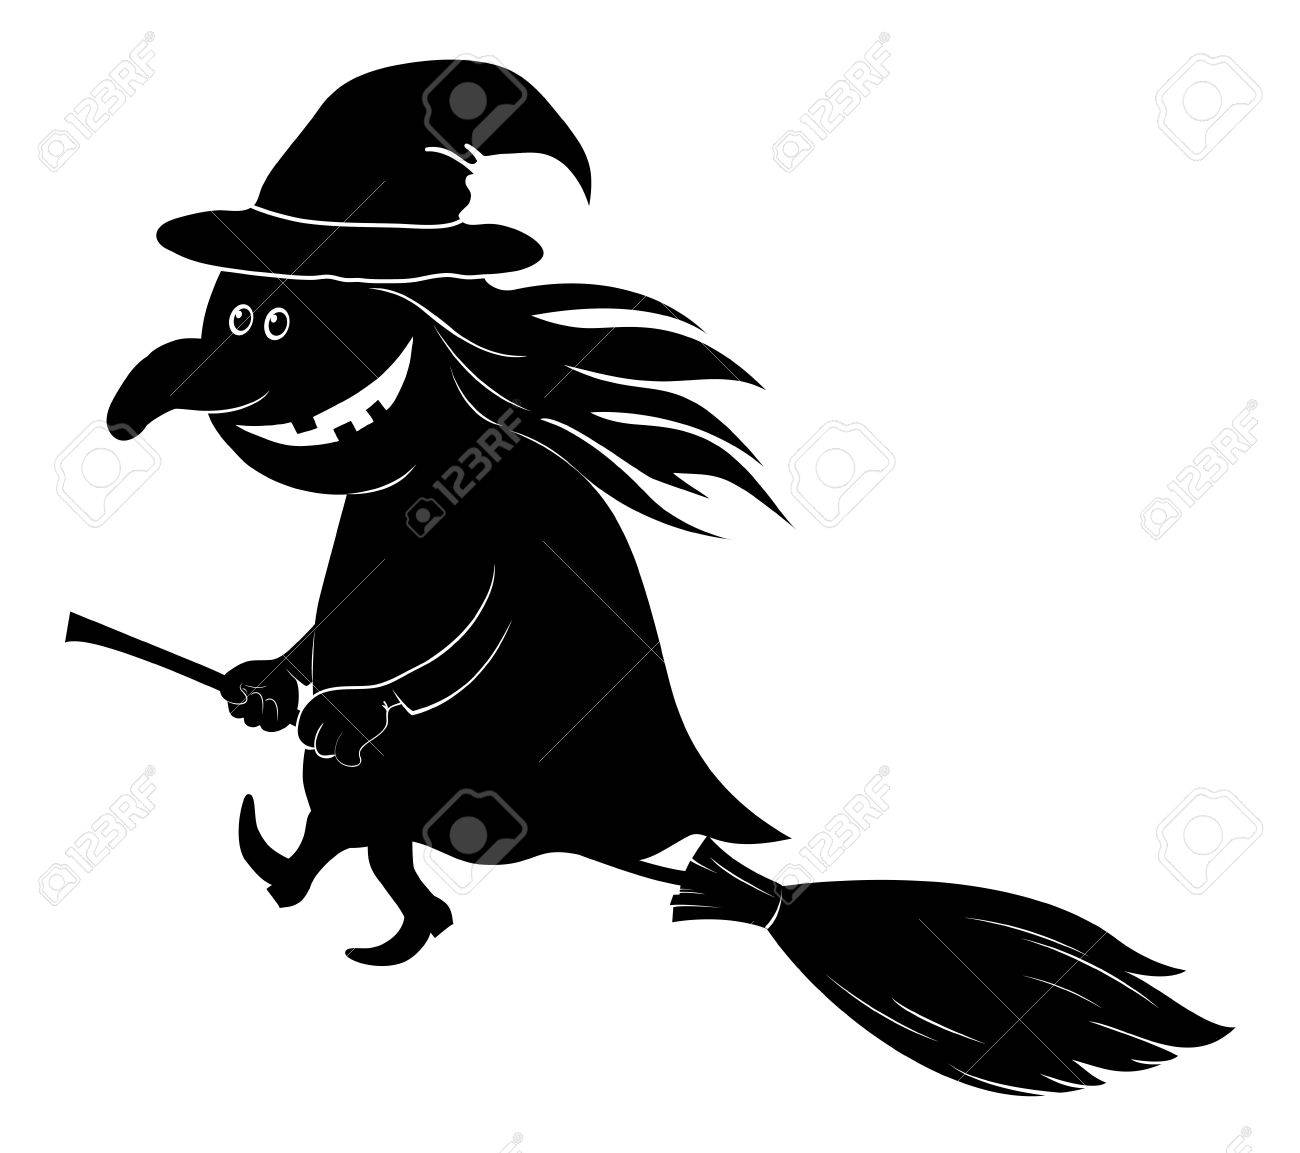 Witch Flying On Broom The Image Of A Holiday Halloween Black